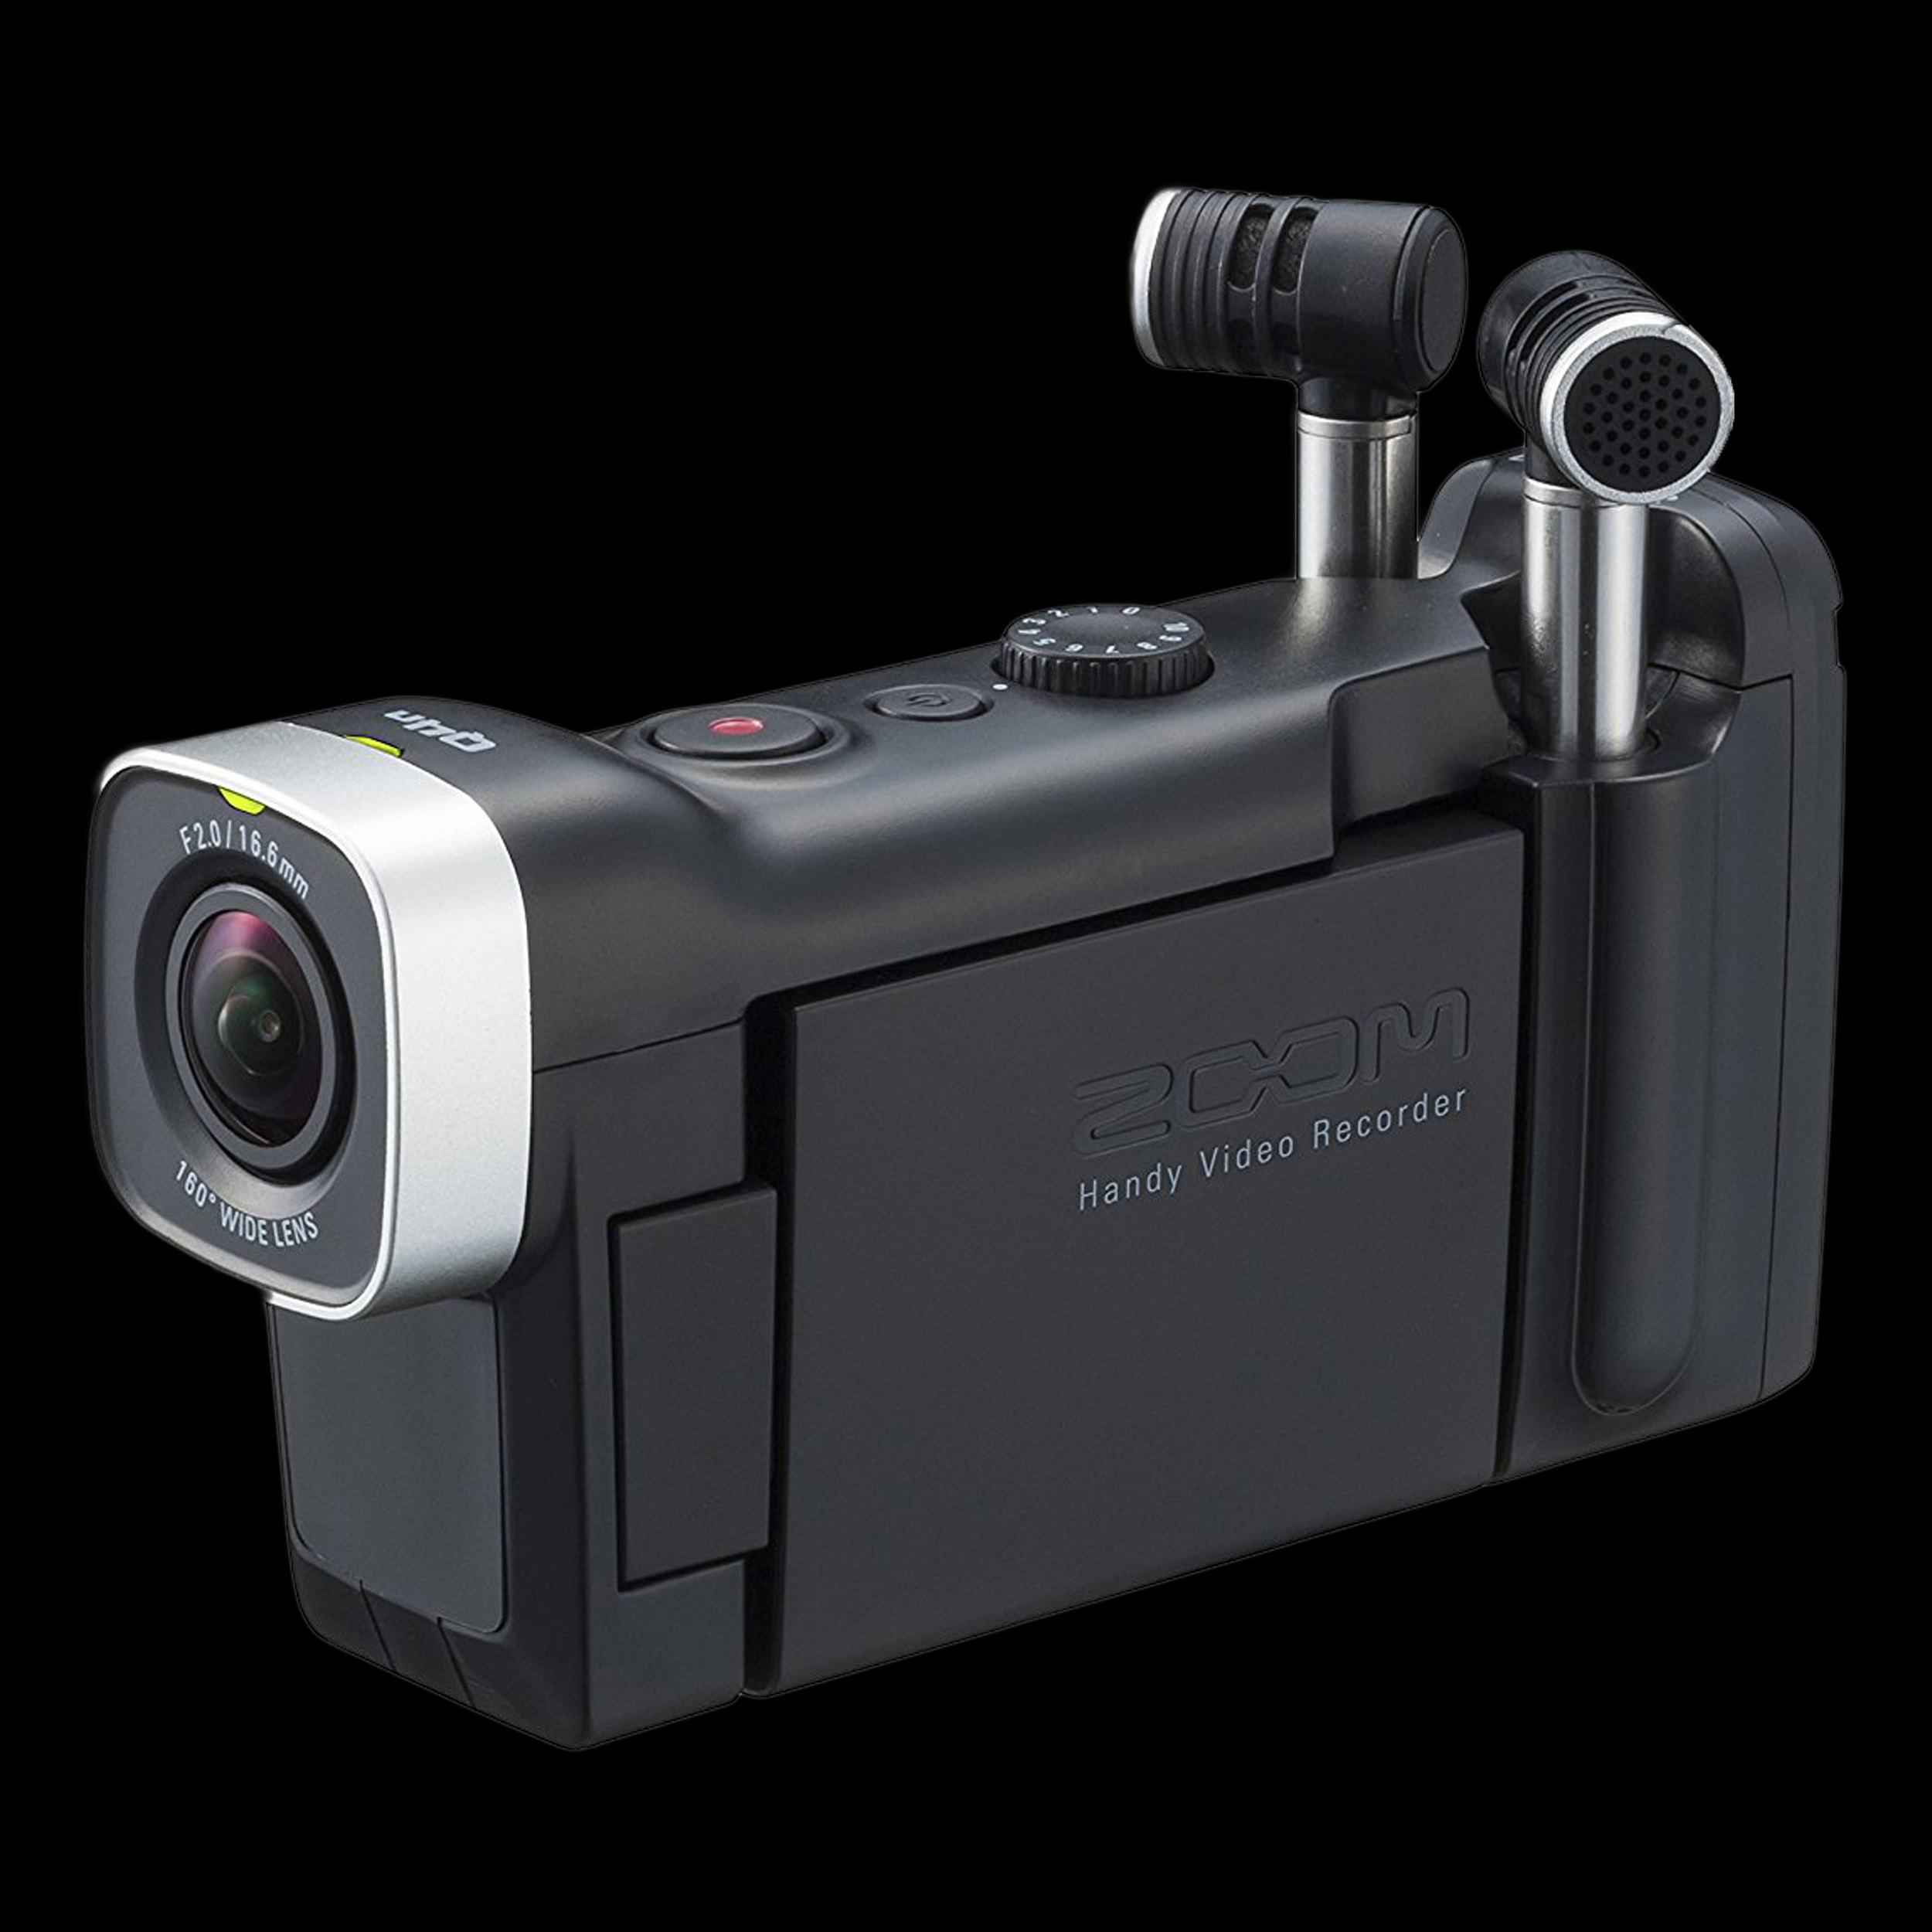 zoom q4n handy video recorder review